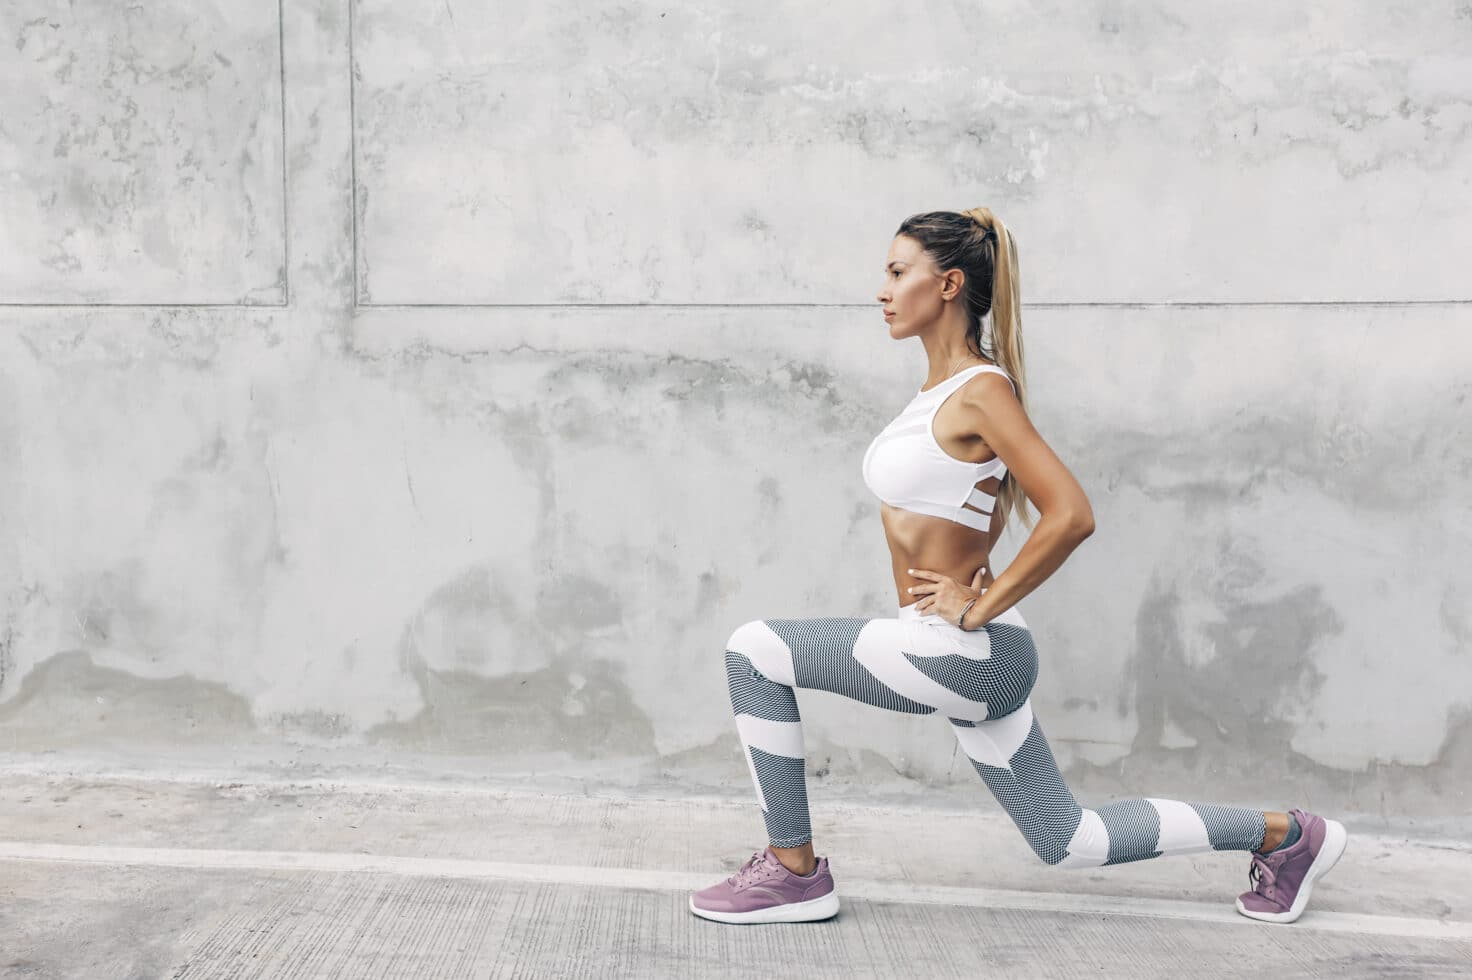 Our 7-day slim legs workout challenge is a great way to learn some new moves.